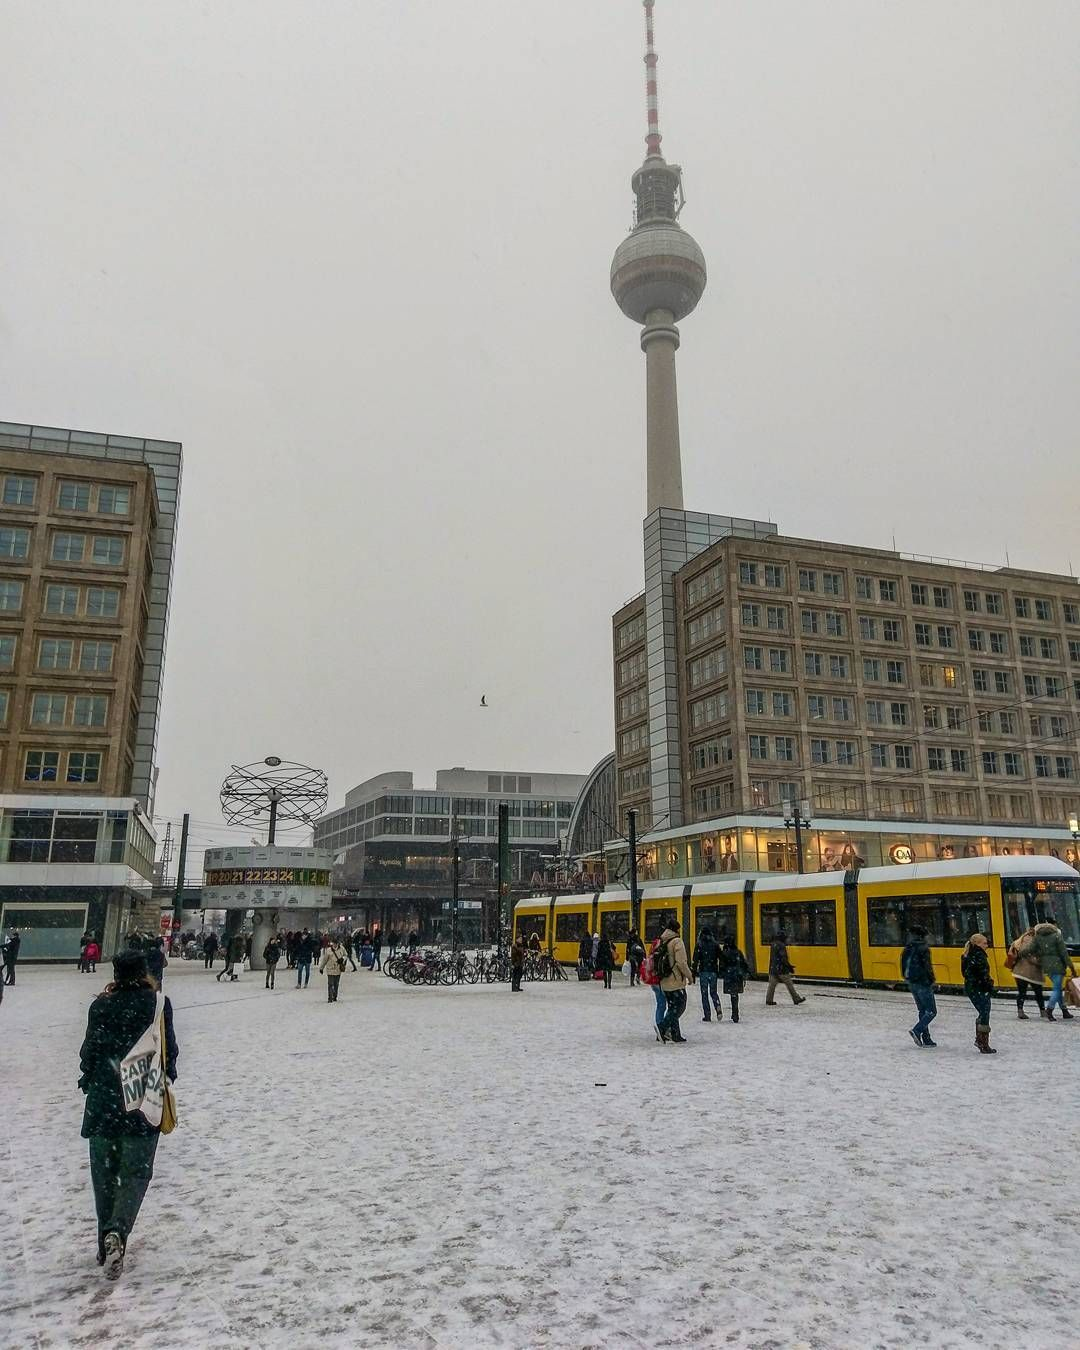 First snow  #snow #winter #berlin #alexanderplatz #berlino #snowing #cold #igersdeutschland #igersberlin #igerberlin #lines #archilovers #buildinglover #deutschland #germany #fernsehturm #tvtower #schnee #tram #square #city #cityscape